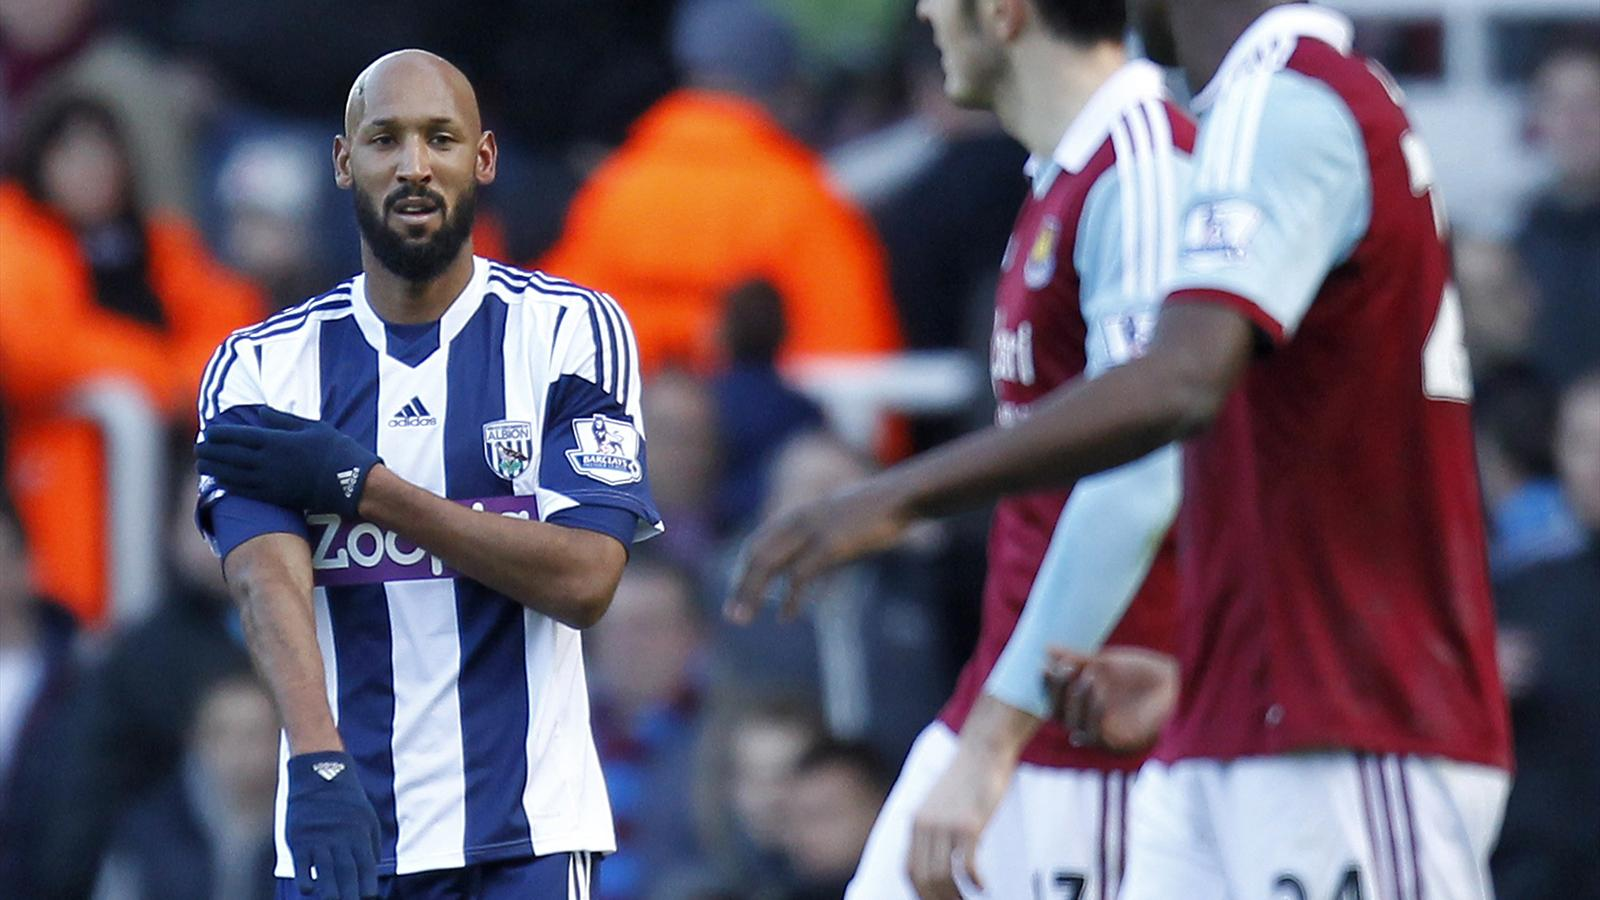 Anelka West Ham-WBA Premier League 2013/2014